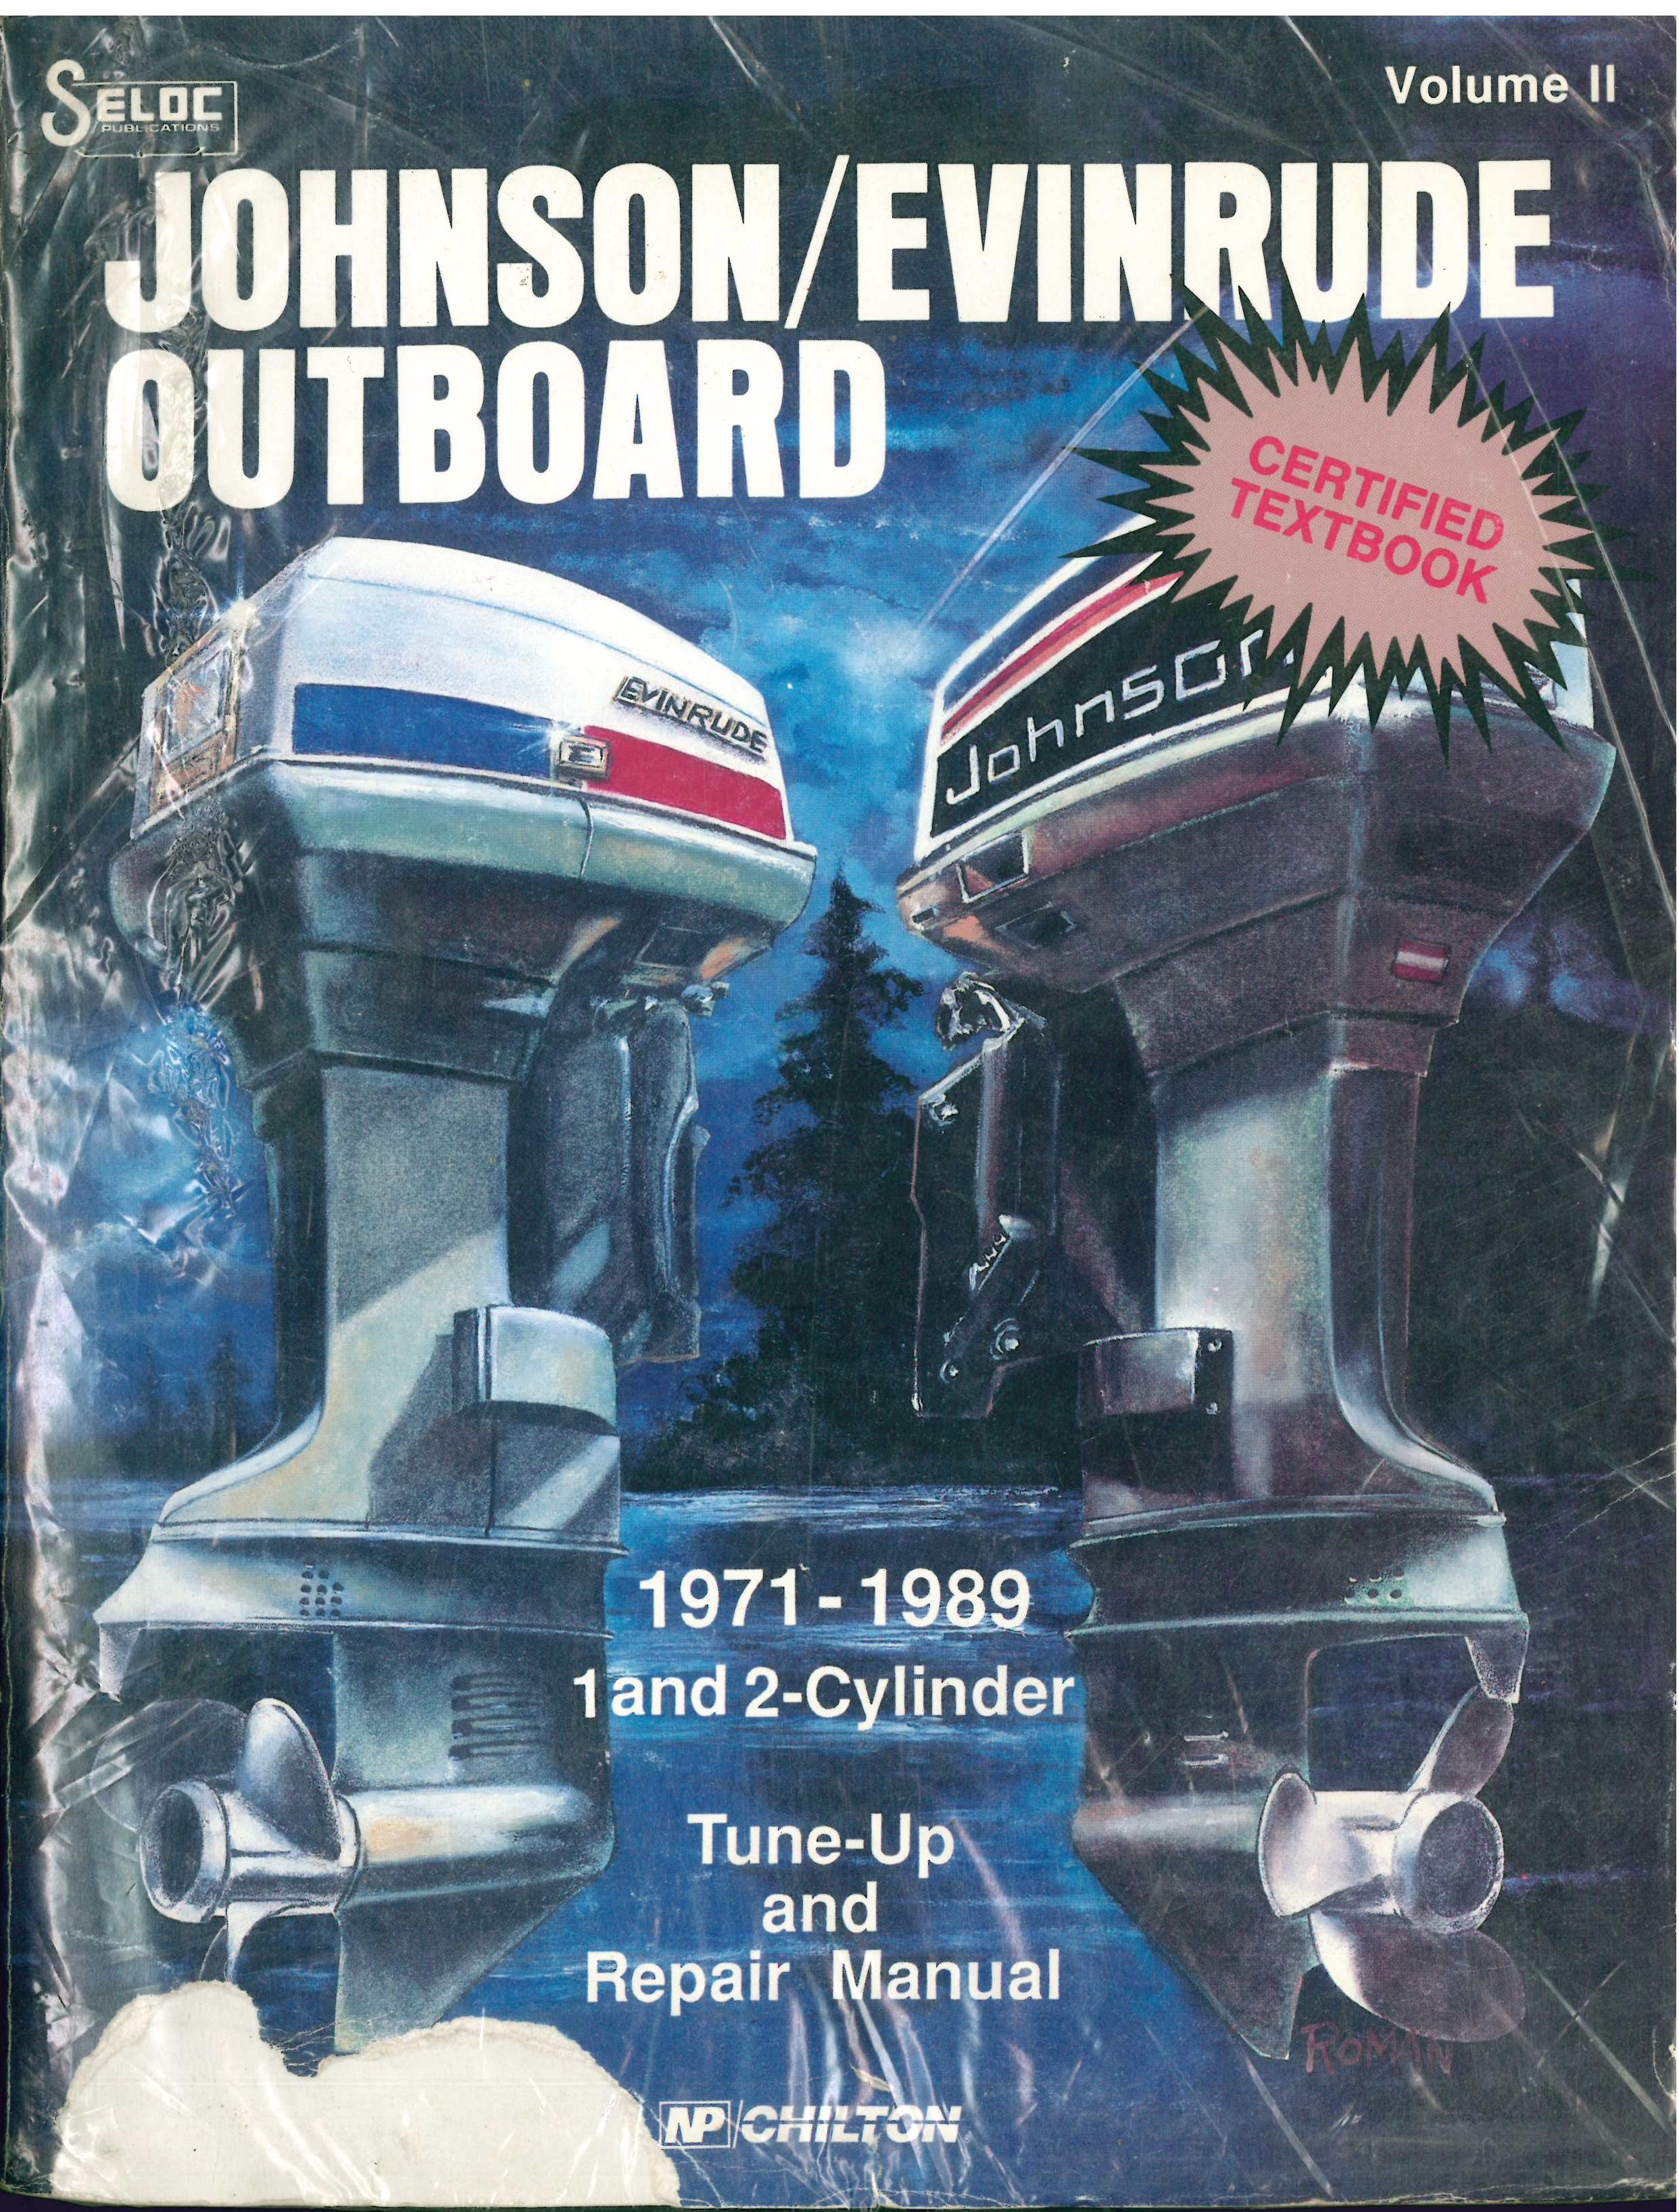 used seloc 1971 1989 johnson evinrude 1 and 2 cylinder outboard boat johnson engine parts used seloc 1971 1989 johnson evinrude 1 and 2 cylinder outboard boat engine repair manual